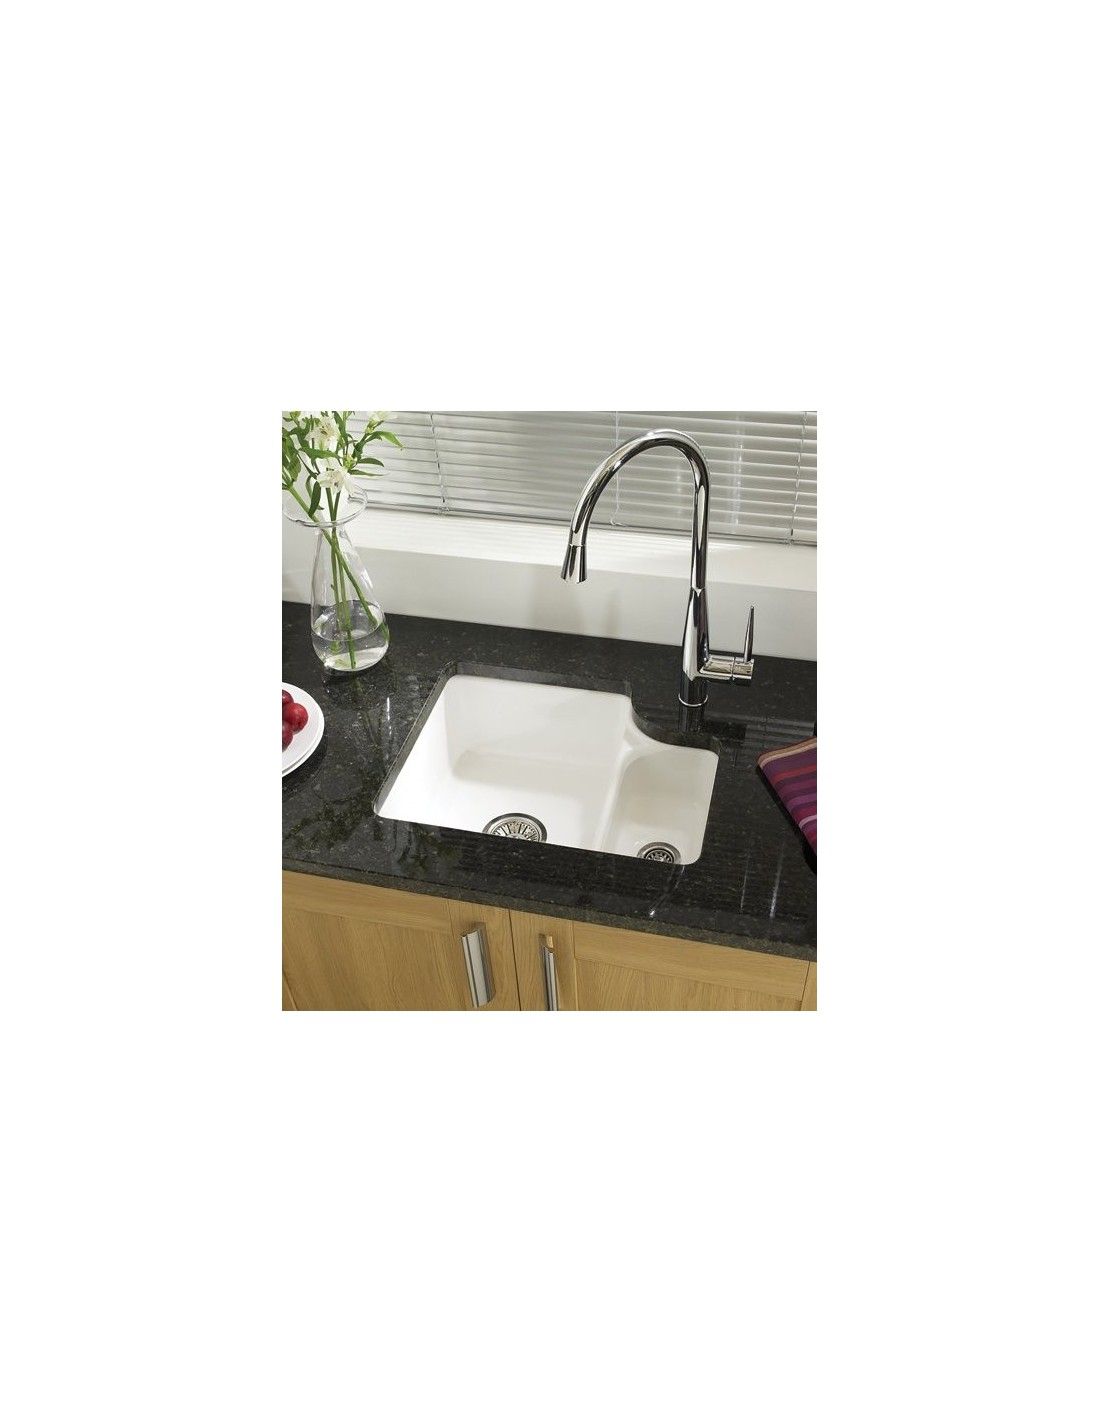 Ceramic Glossy white kitchen sink, 1.5 bowl only £335 includes waste ...